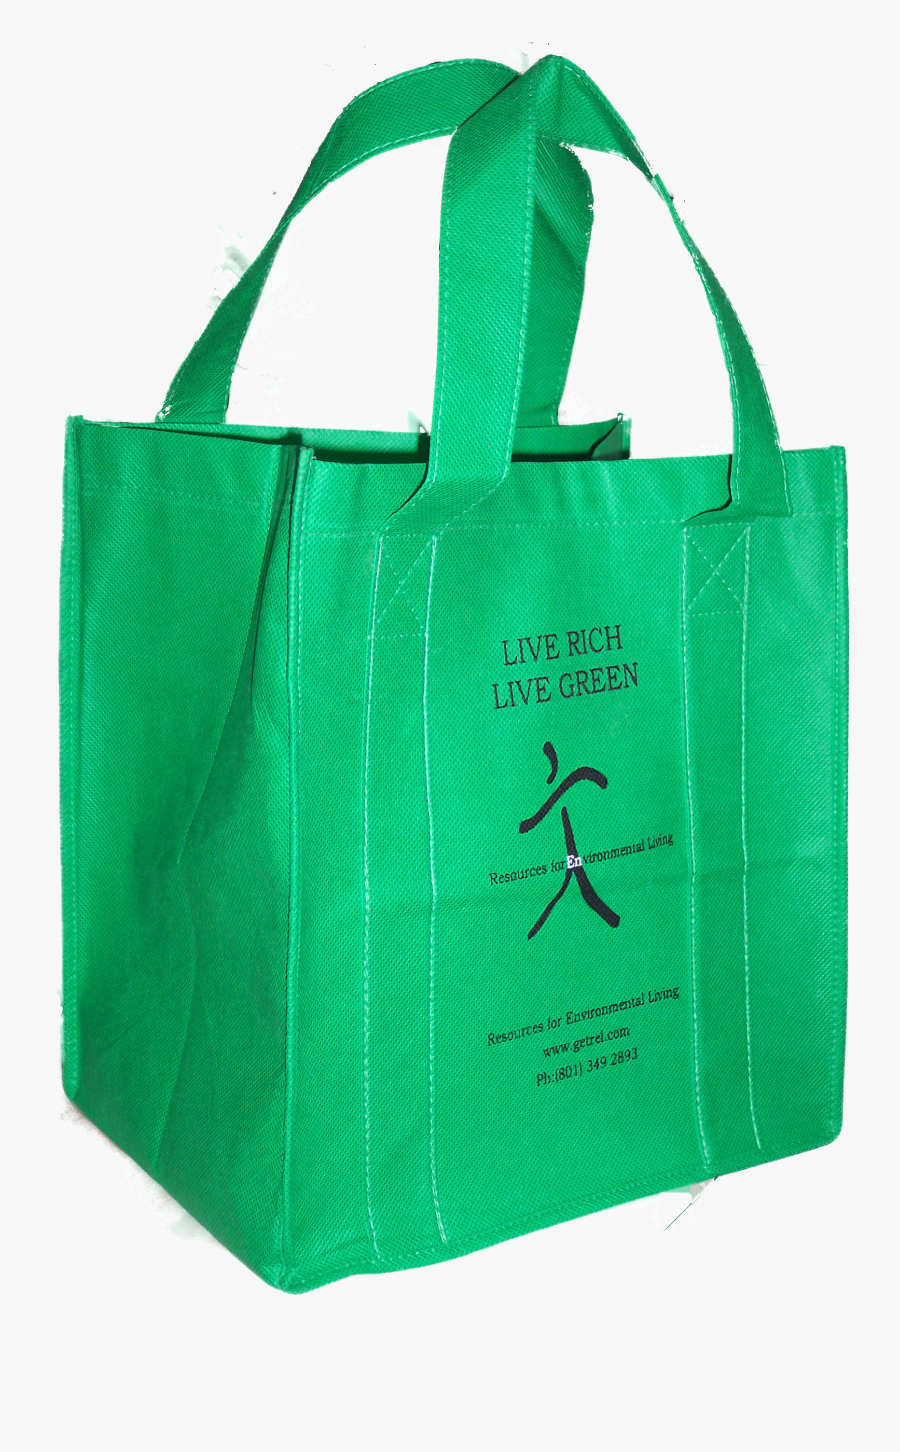 Food Safety Risk - Reusable Shopping Bags Transparent, Transparent Clipart